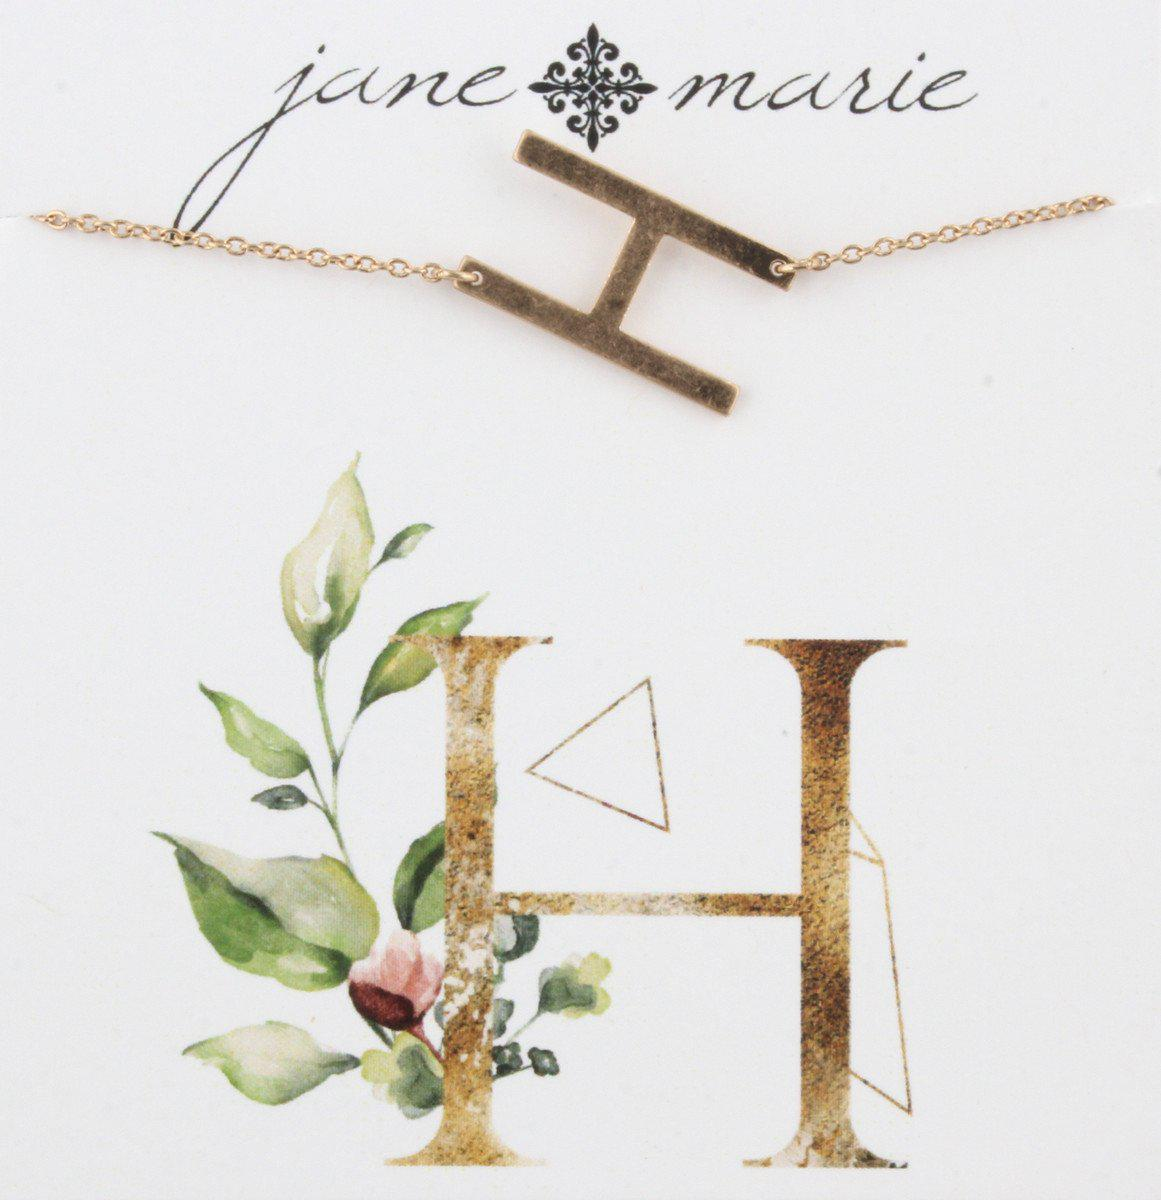 Jane Marie You-nique Initial Necklace